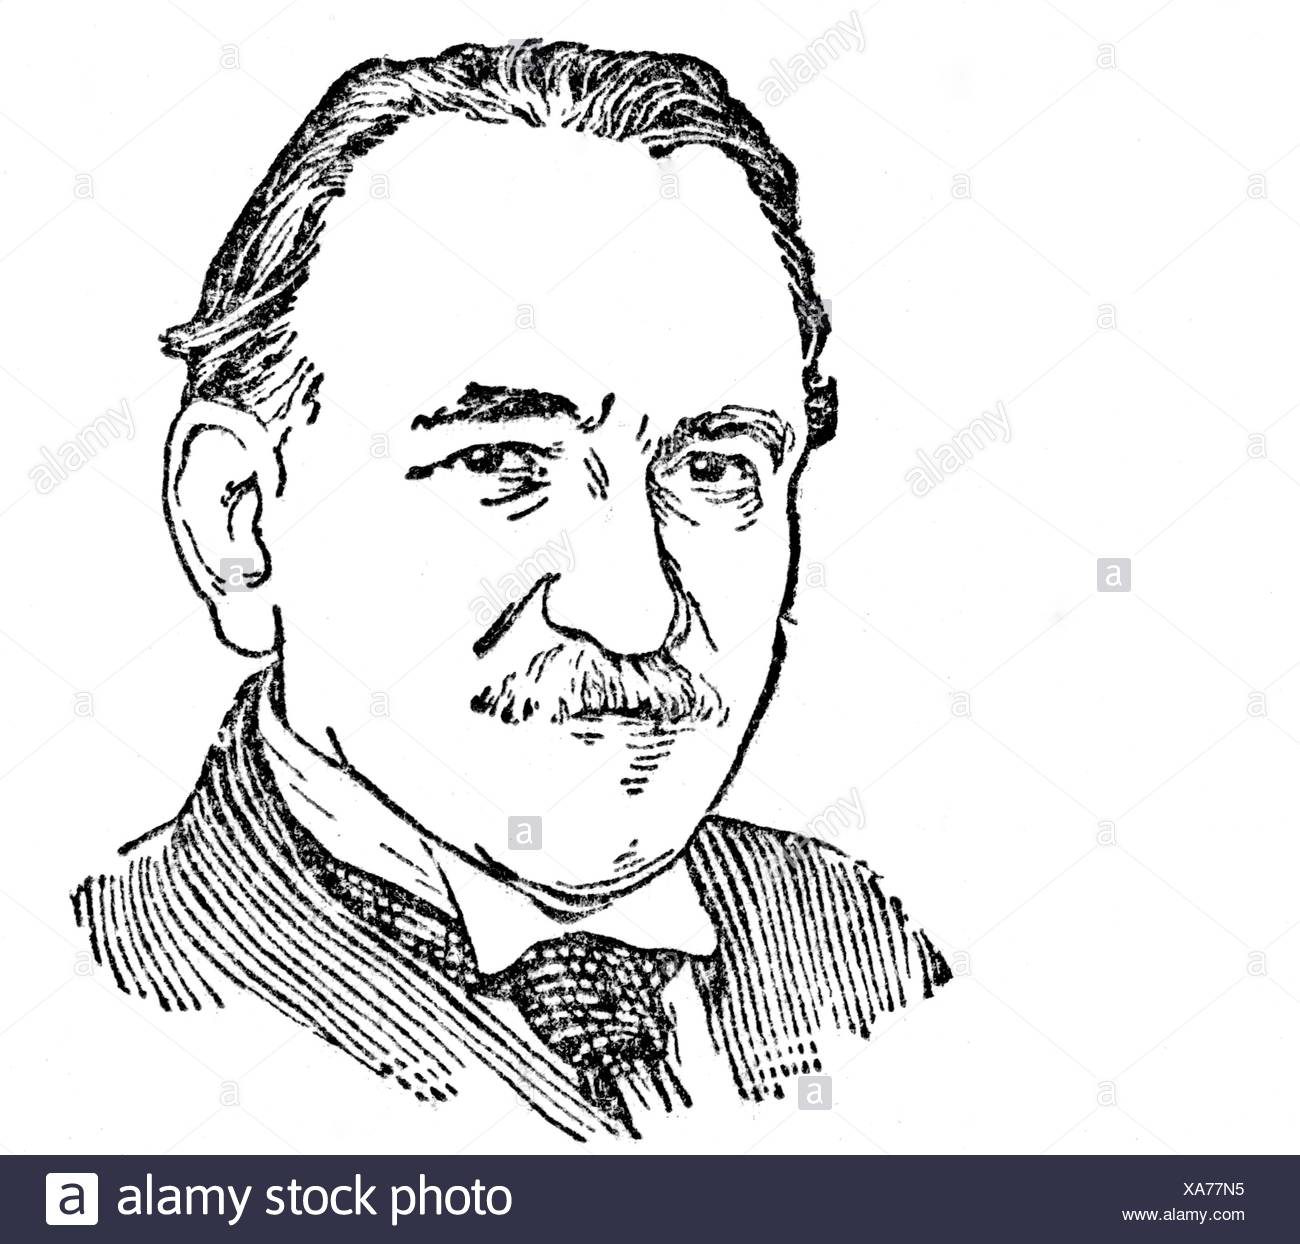 Foerster, Josef Bohuslav, 30.12.1859 - 29.5.1951, Czech composer, portrait, line drawing, , Additional-Rights-Clearances-NA - Stock Image